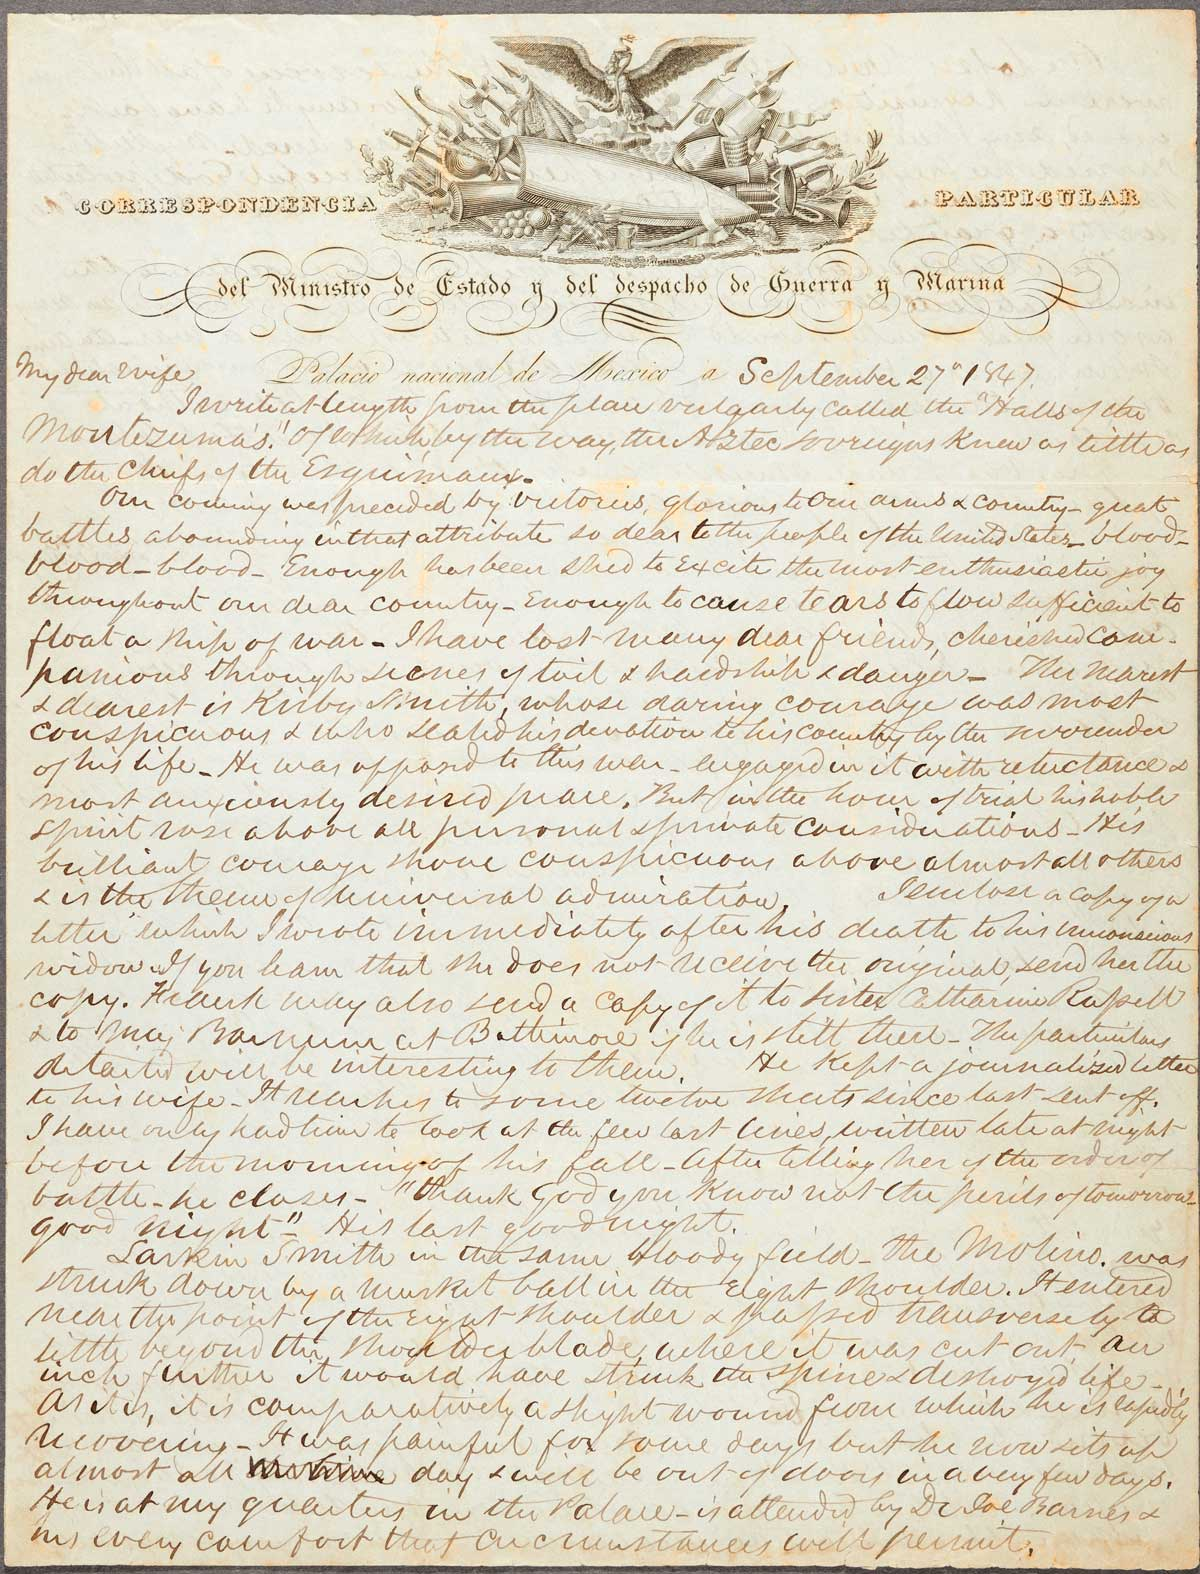 Autograph letter by Edmund Kirby signed to Eliza Brown Kirby dated Mexico City, September 27, 1847  | The Huntington Library, Art Museum, and Botanical Gardens